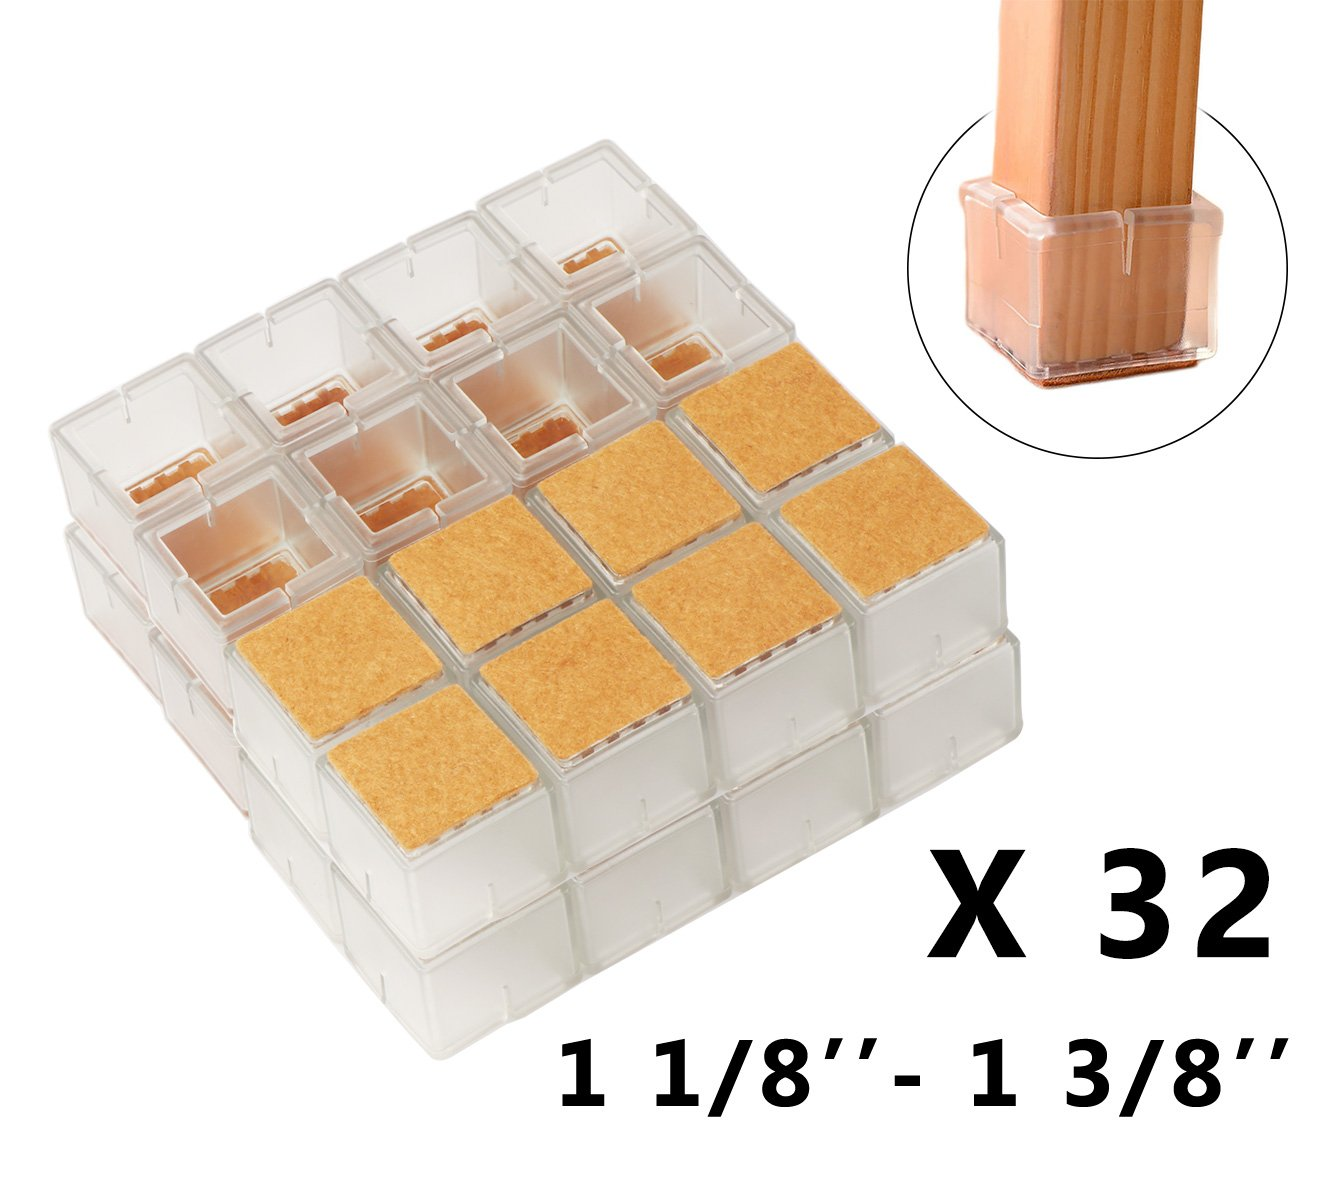 52bf4a20568 Get Quotations · Chair Leg Hardwood Floor Protectors with Felt Mat Furniture  Table Leg Glides Feet Caps Fit Square